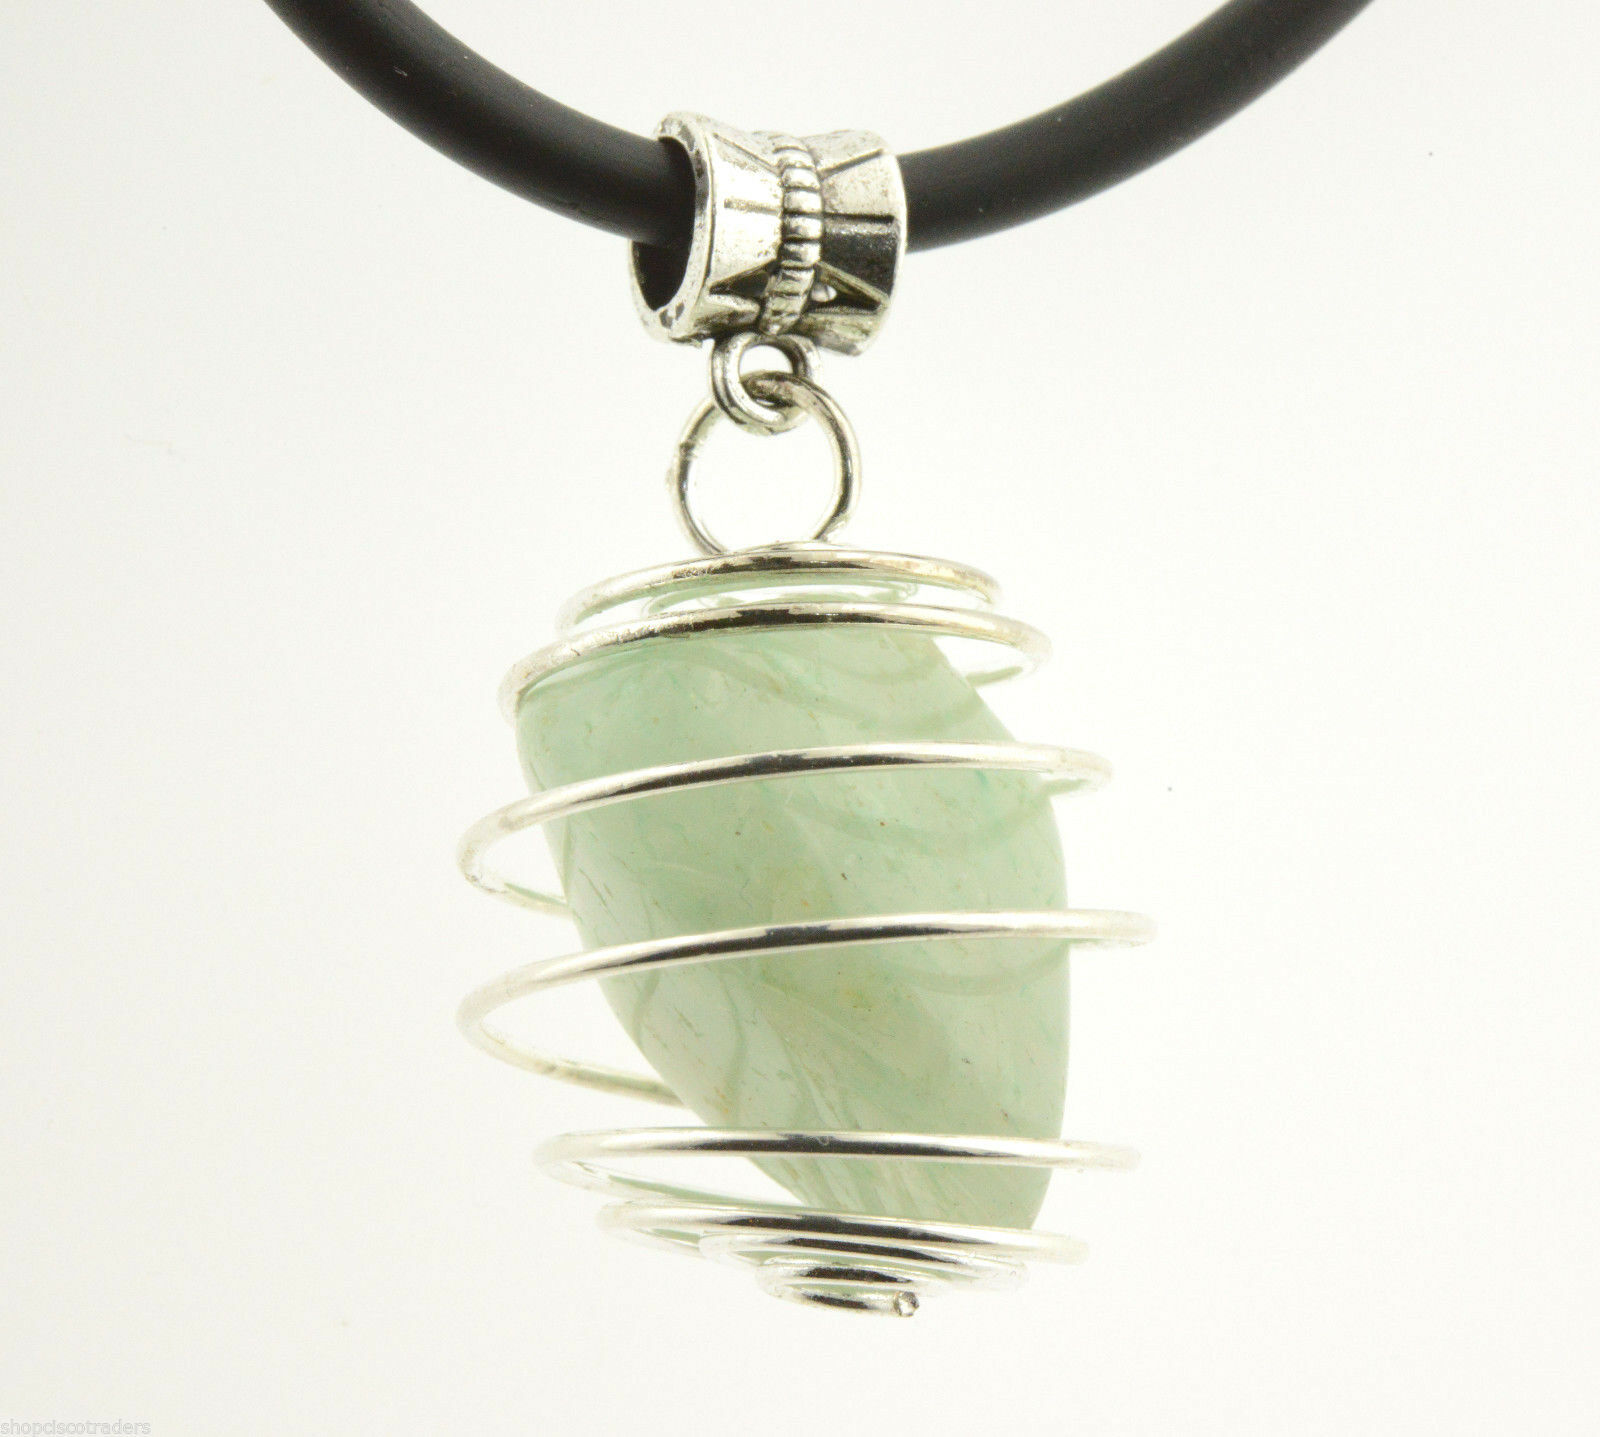 One Healing Crystal Reiki Unisex Cage Pendant Necklace Rubber Cord Teacher Gift